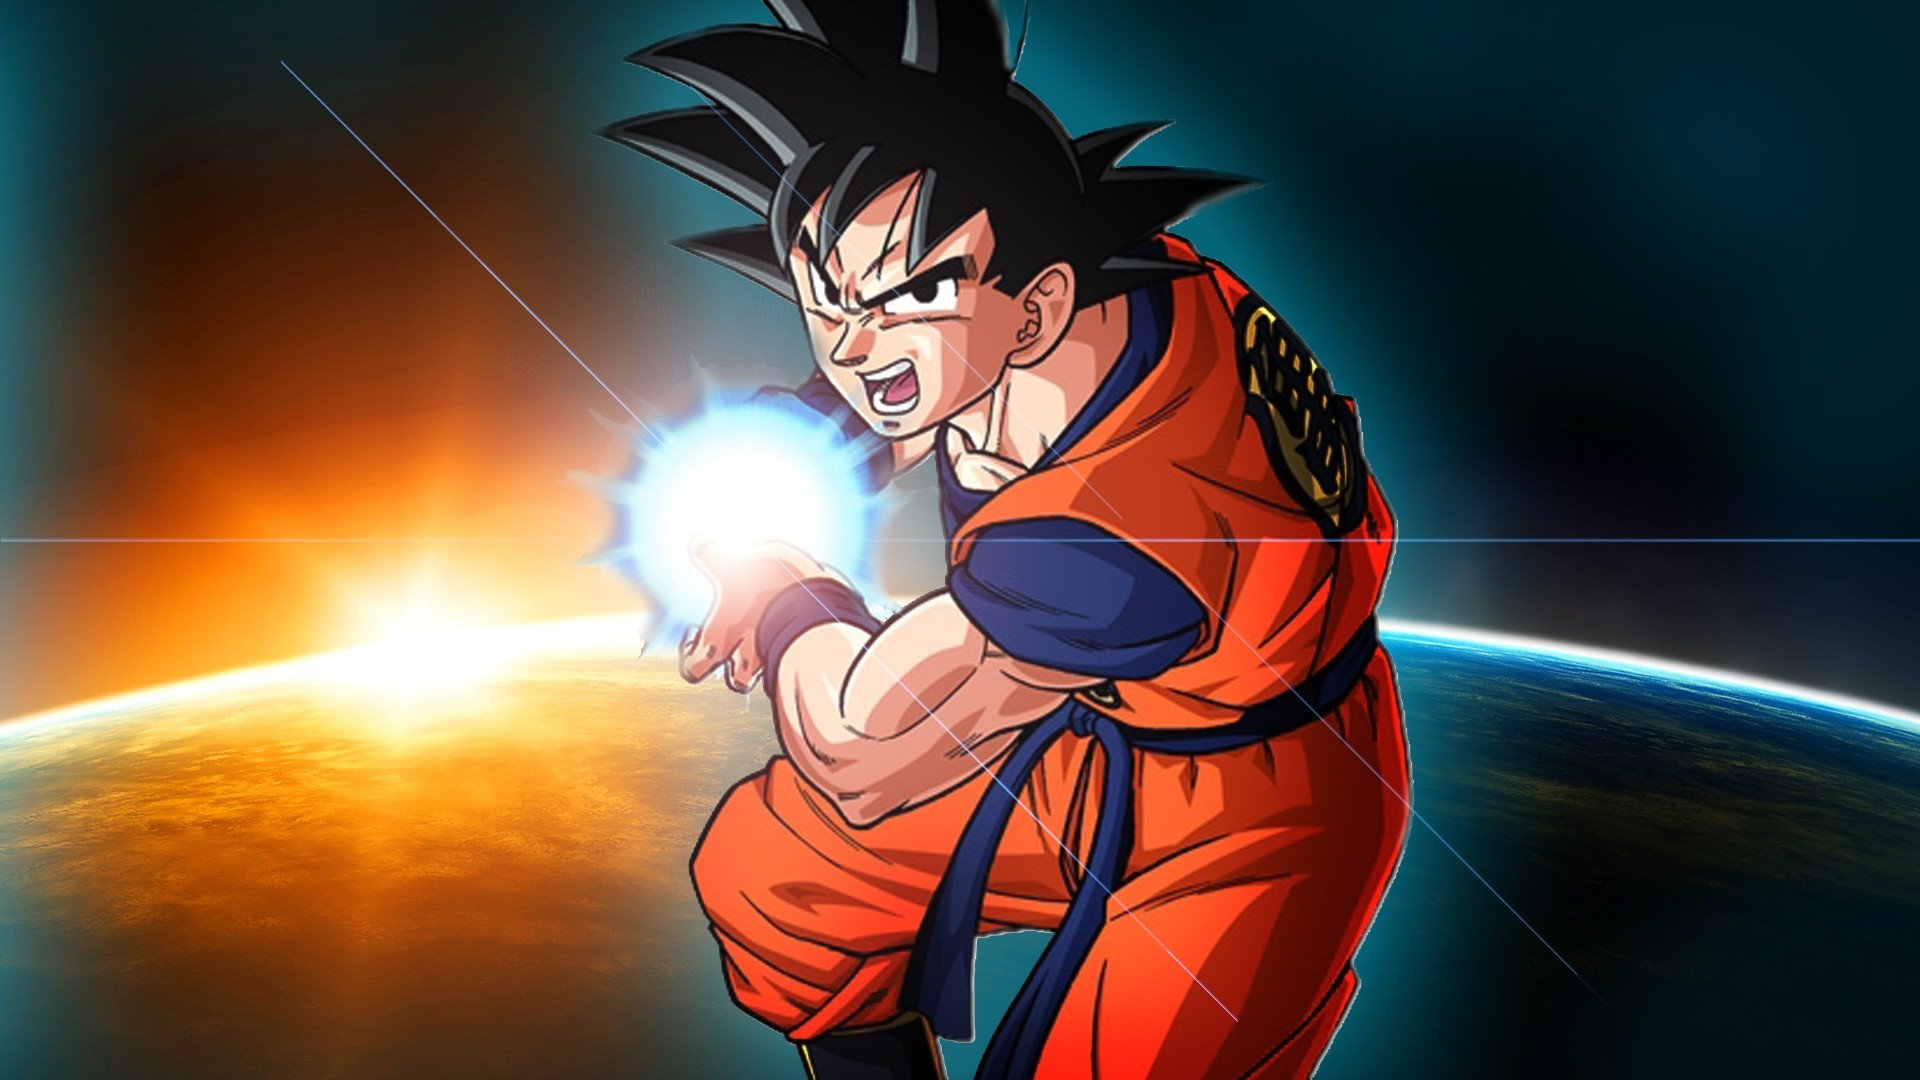 Kamehameha Dragon Ball Z Hd Socialphy Wallpapers Resolution : Filesize :  kB, Added on May Tagged : kamehameha